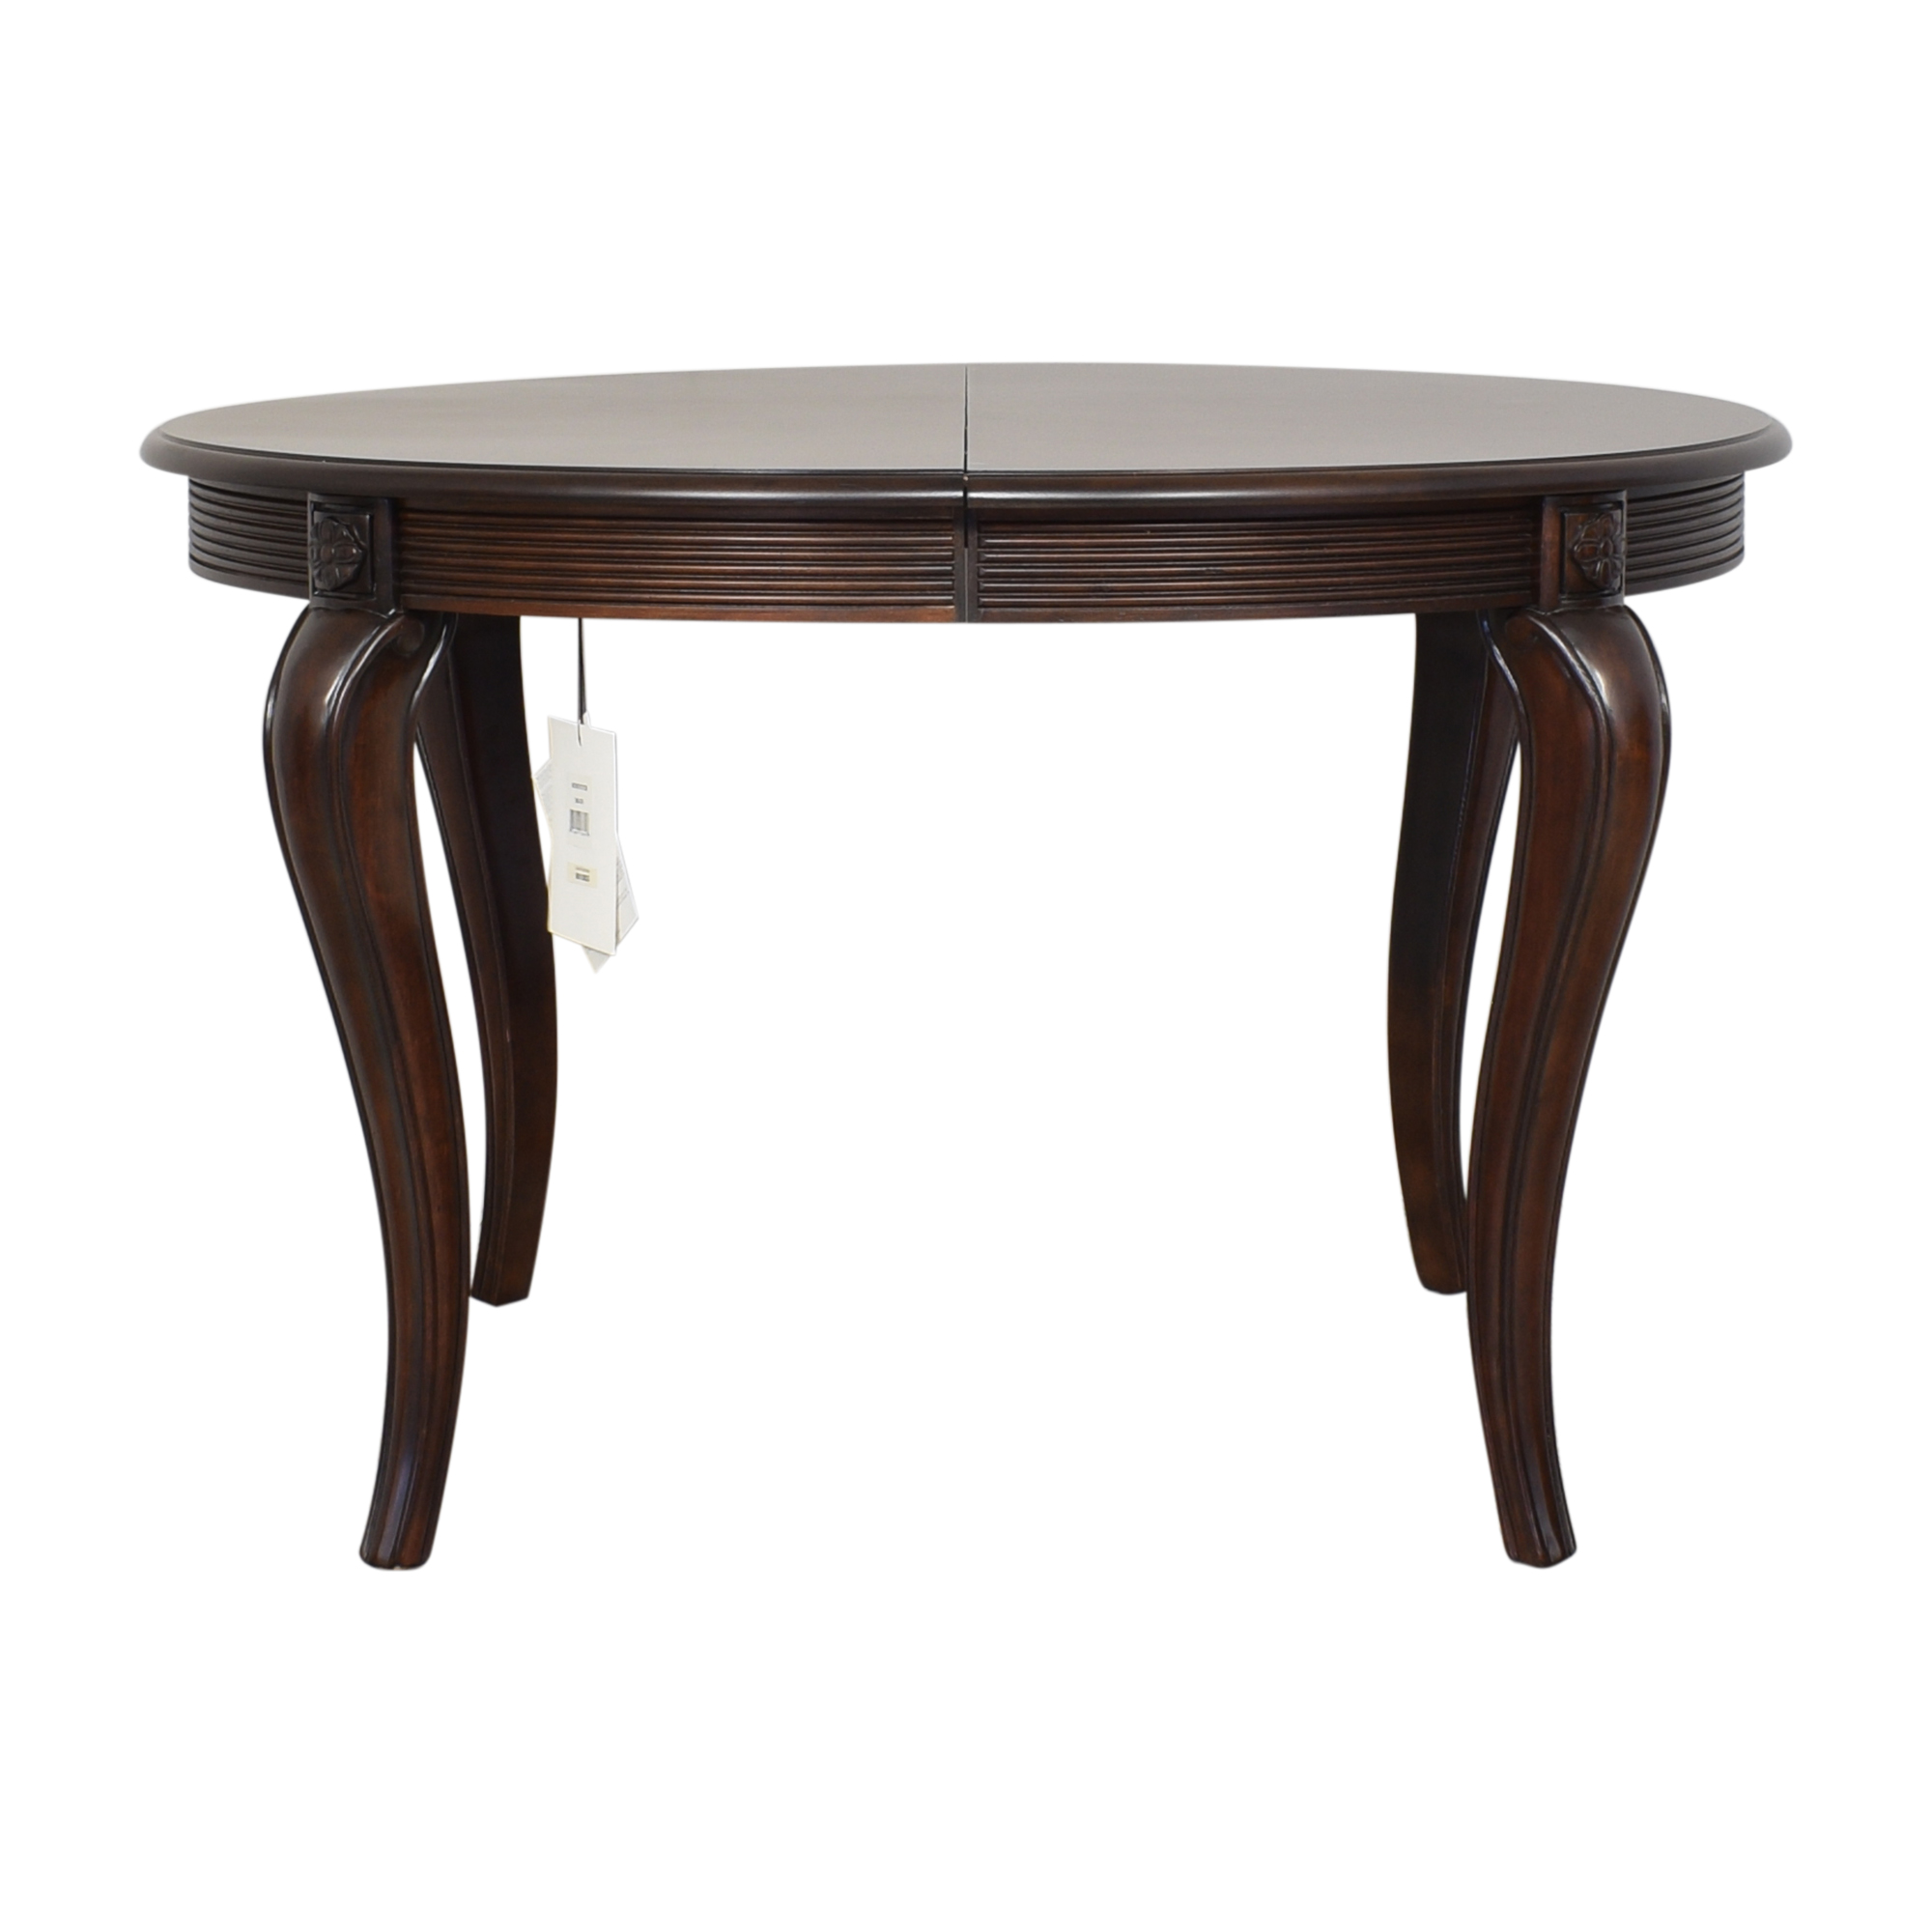 Bernhardt Round Extendable Dining Table / Dinner Tables